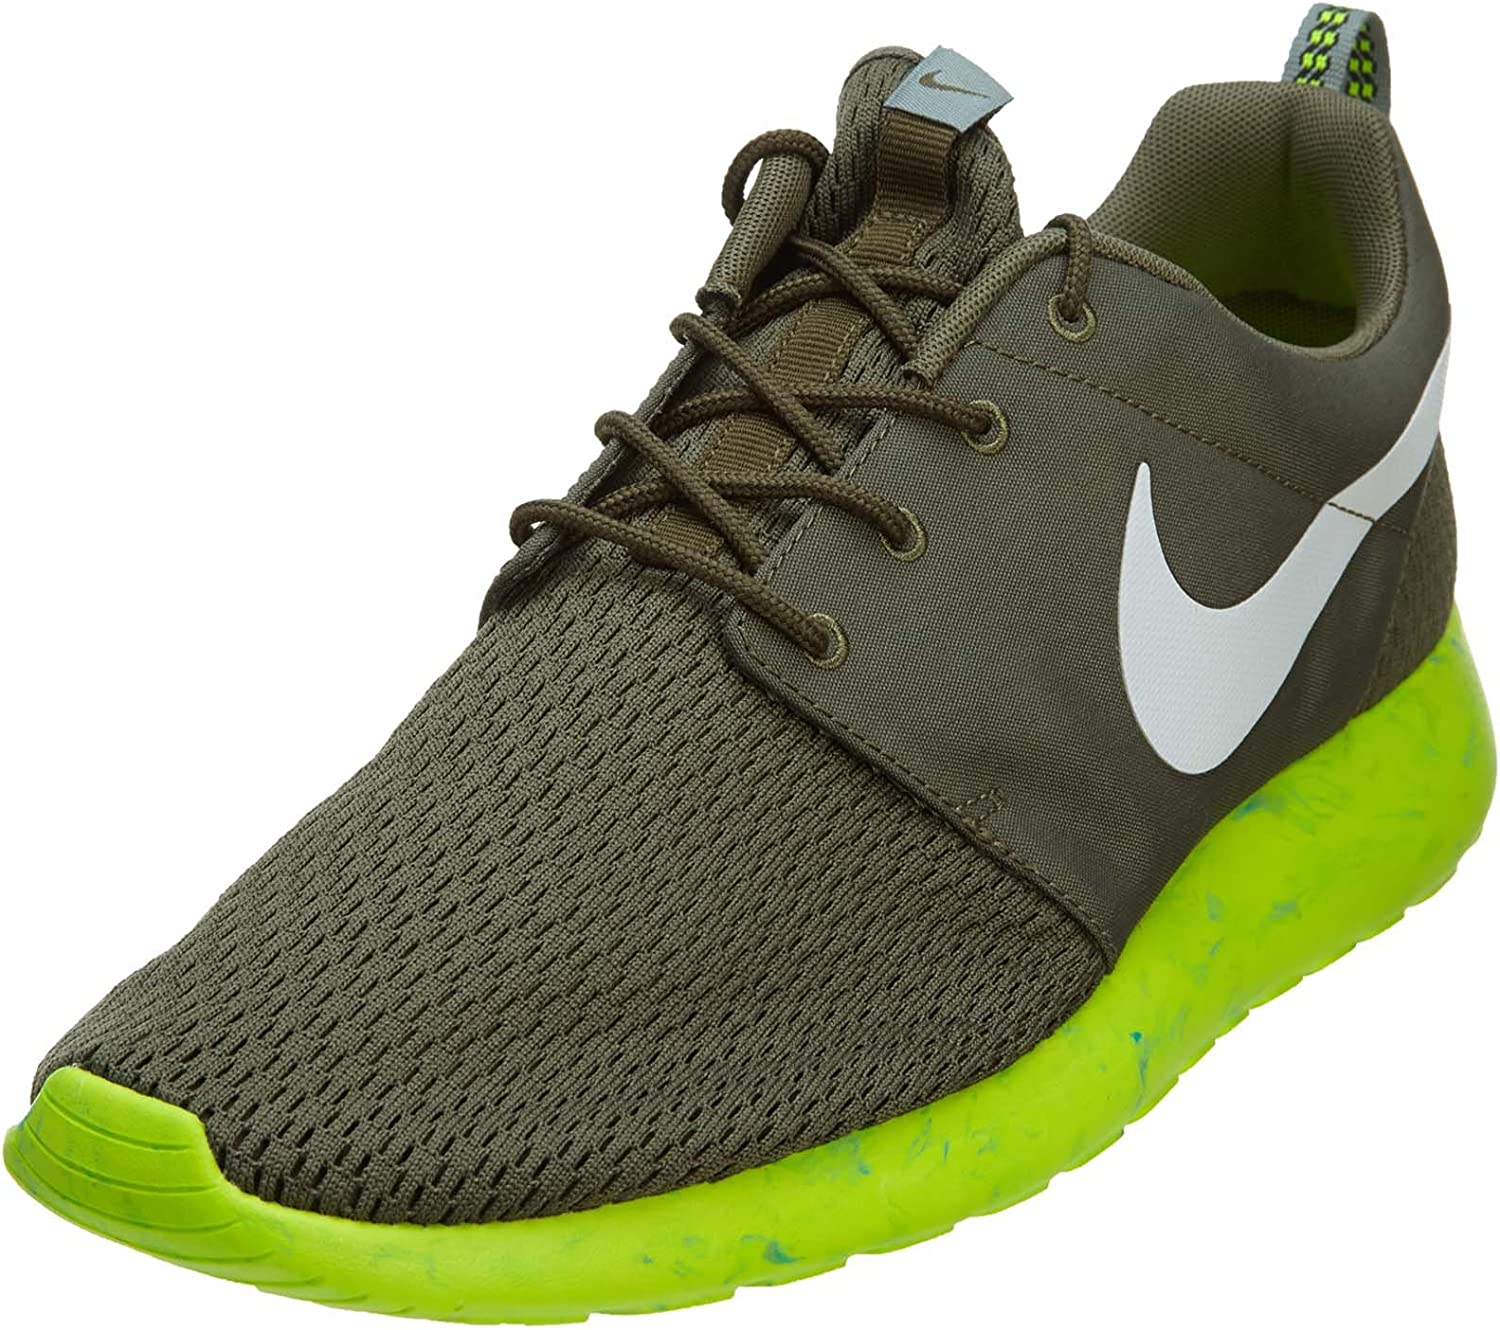 Nike Roshe Run M Men s Shoes Medium Olive White-MC Green-Volt 669985-200